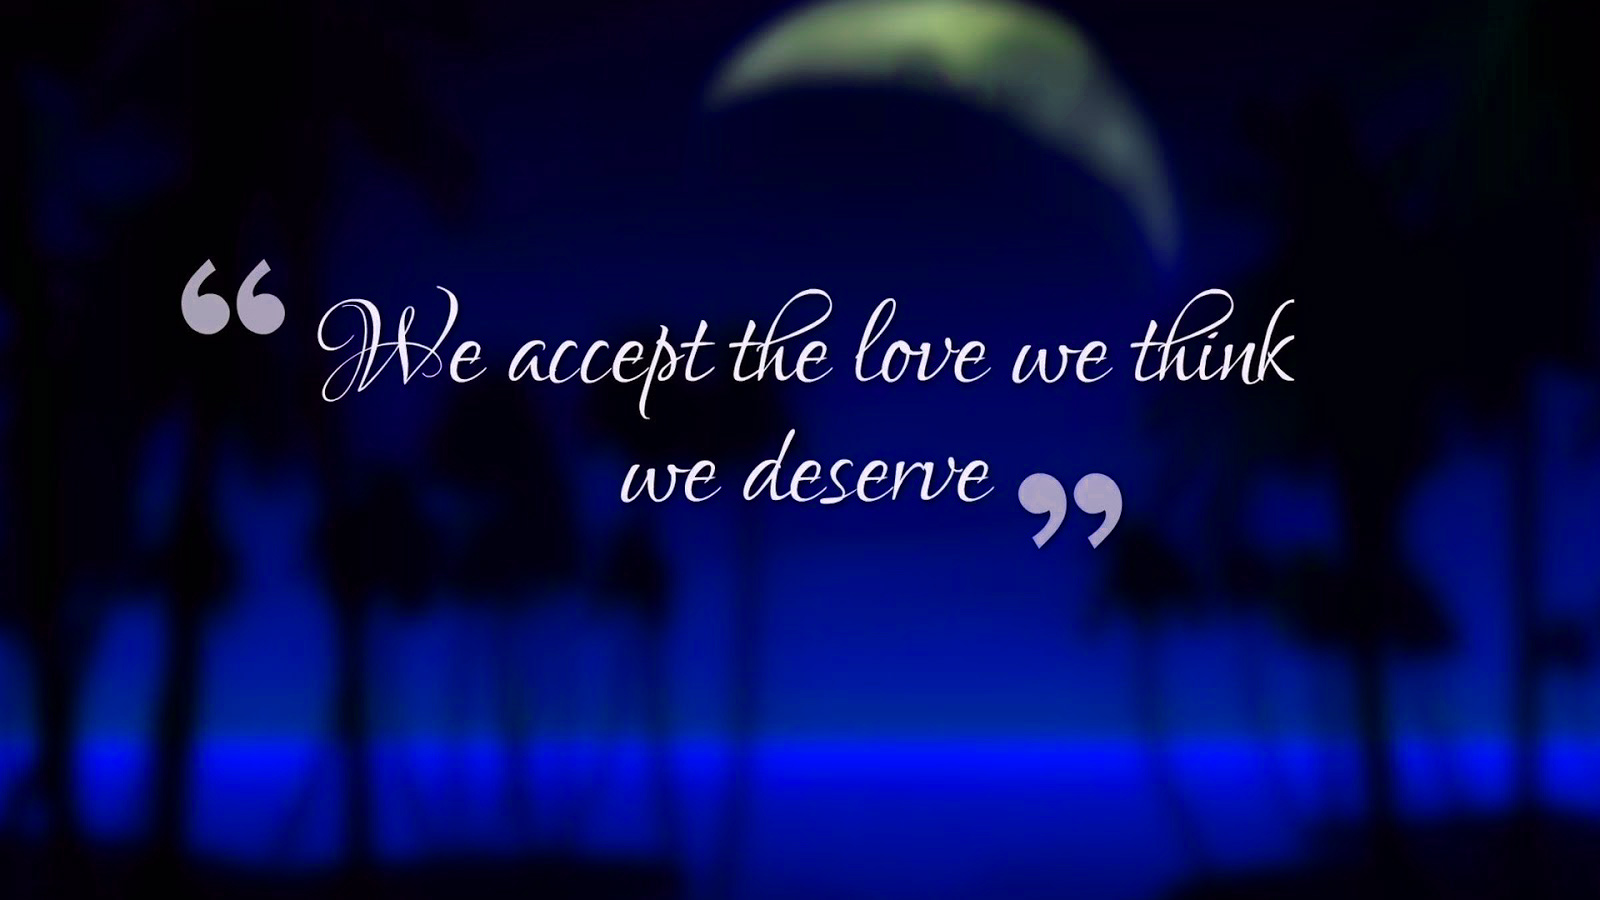 awesome love quotes for whatsapp dp77 Copy 2